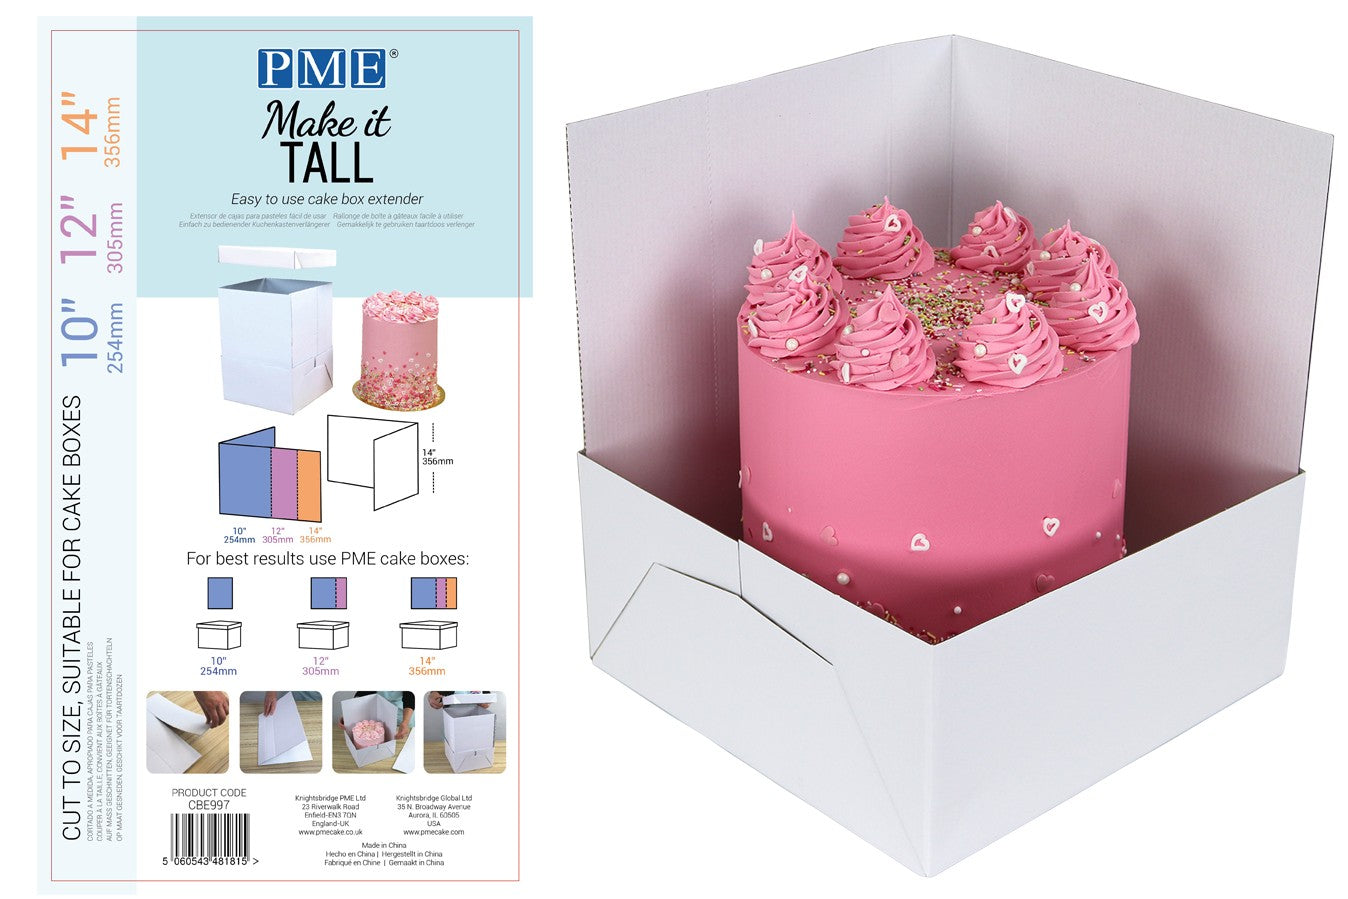 PME : Make it Tall - 3 in 1 Cake Box Extension